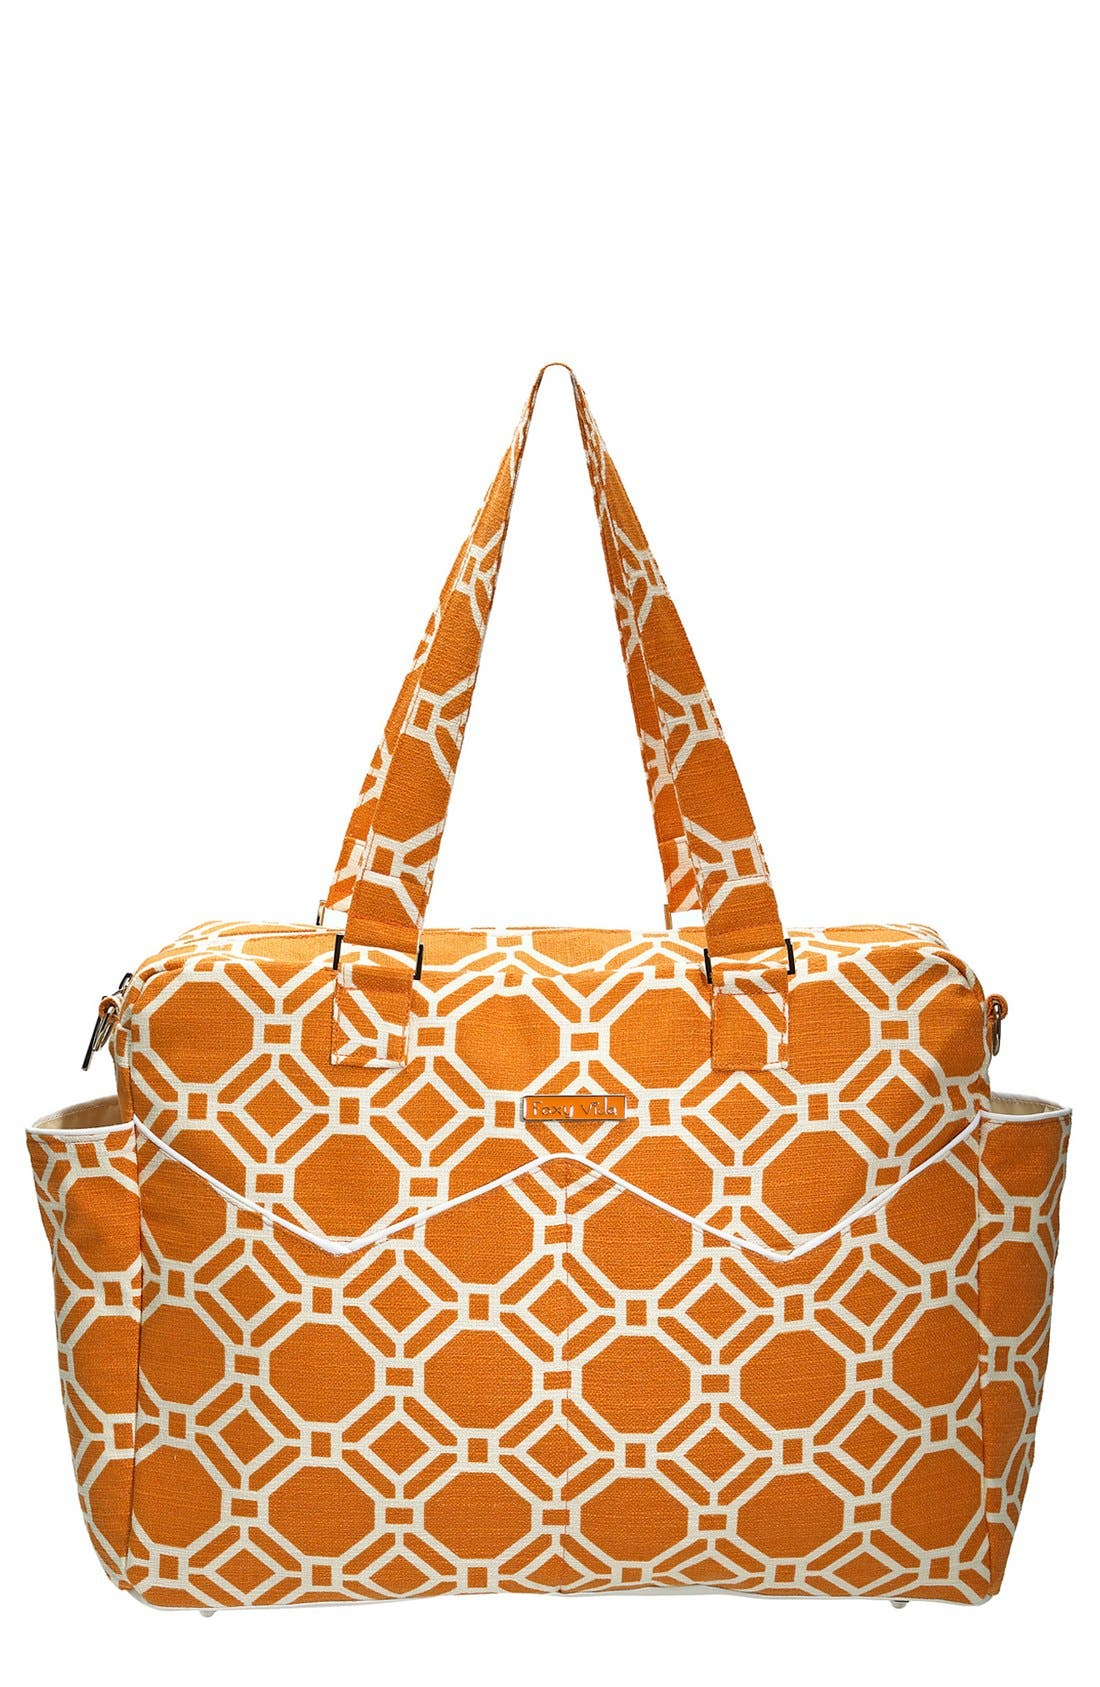 Main Image - Foxy Vida 'Lattice' Print Satchel